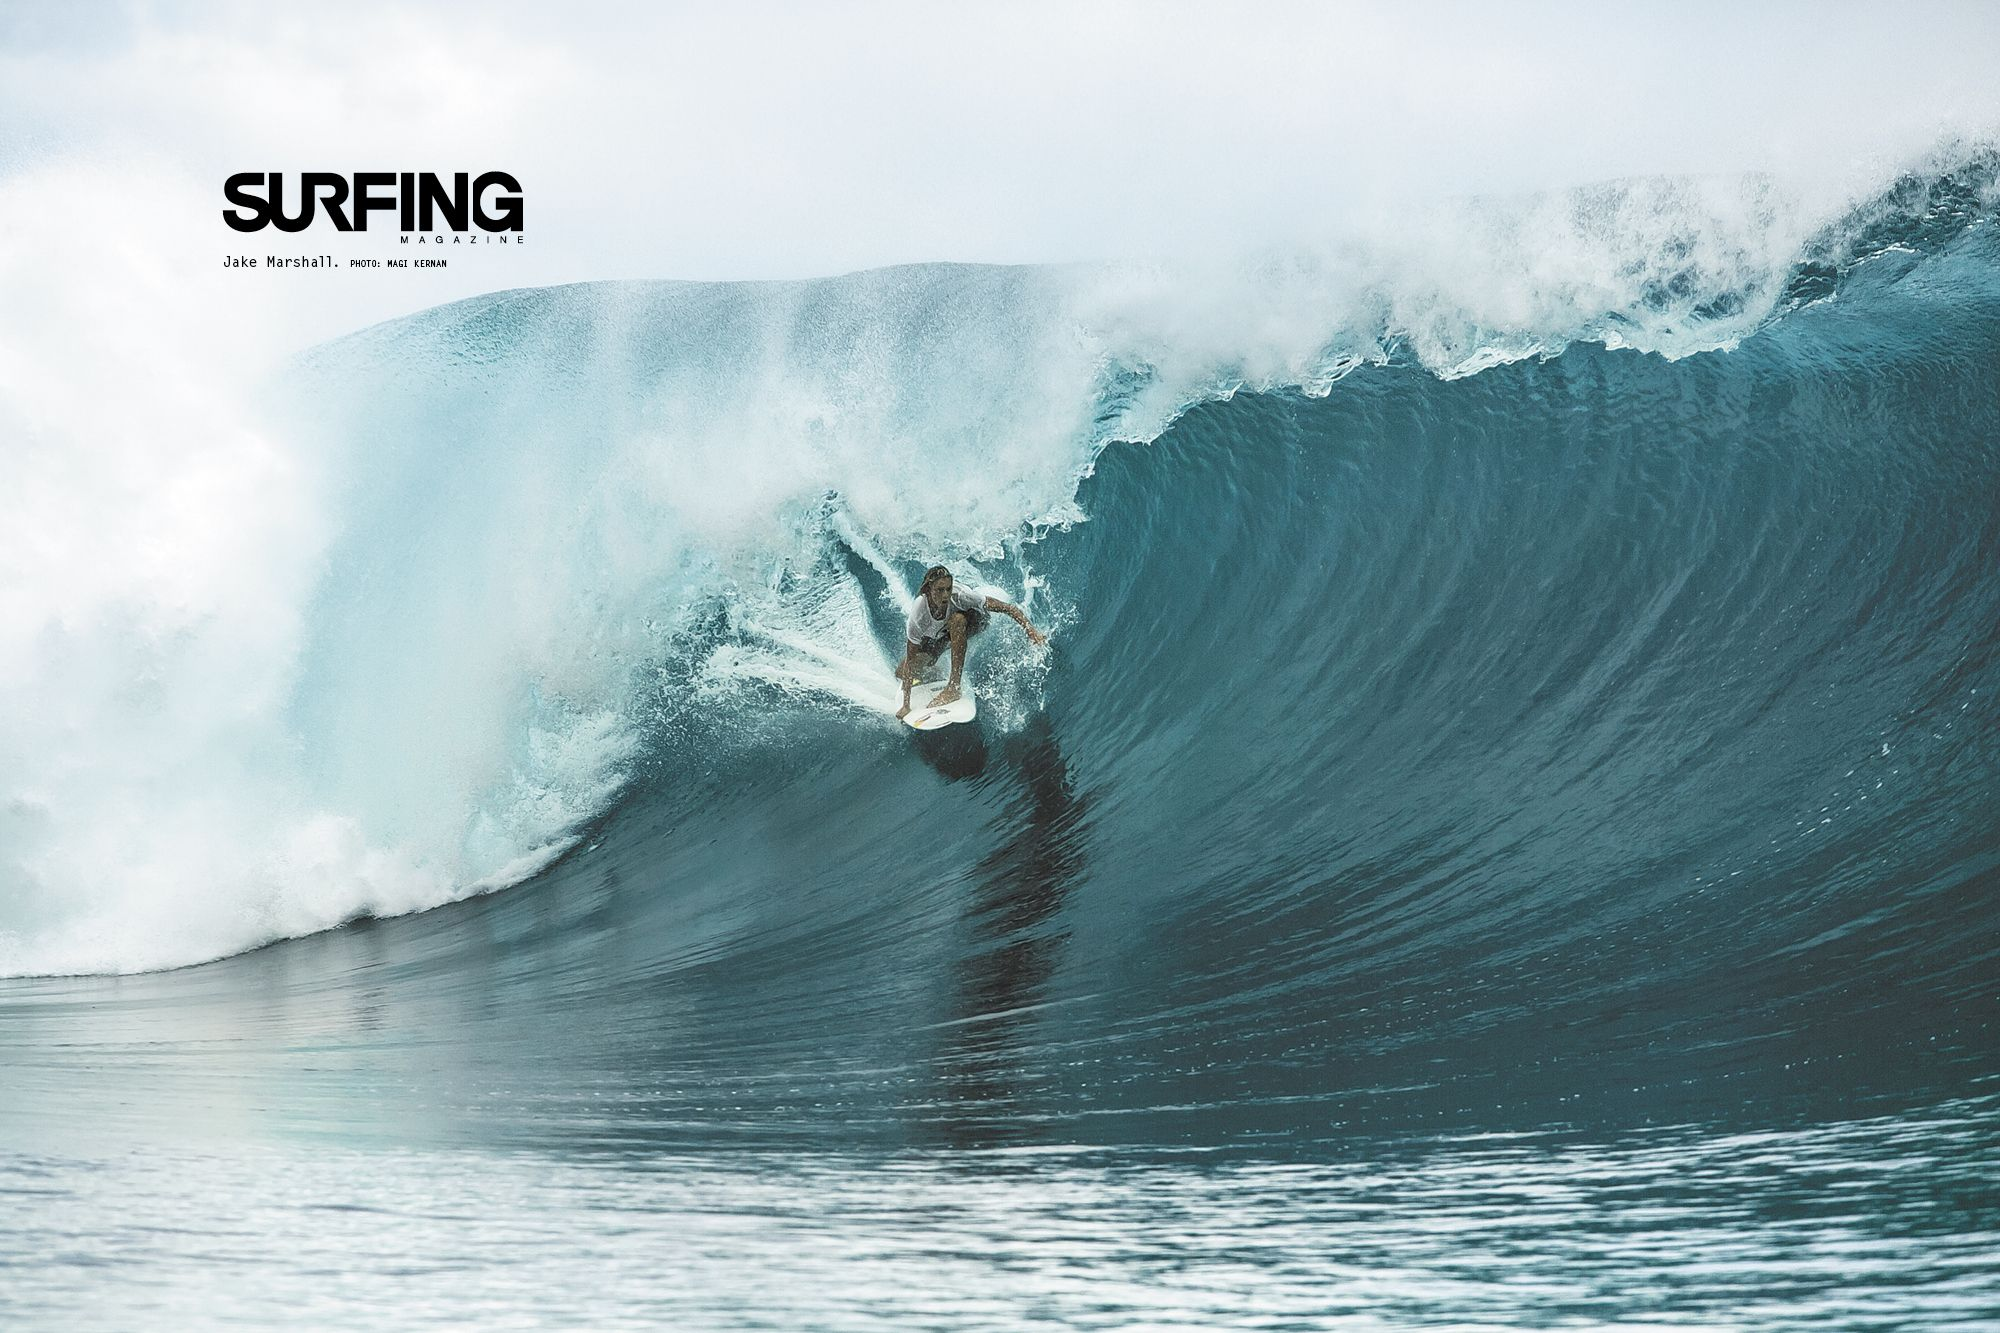 wallpapers surfer magazine | hd wallpapers | pinterest | surfing